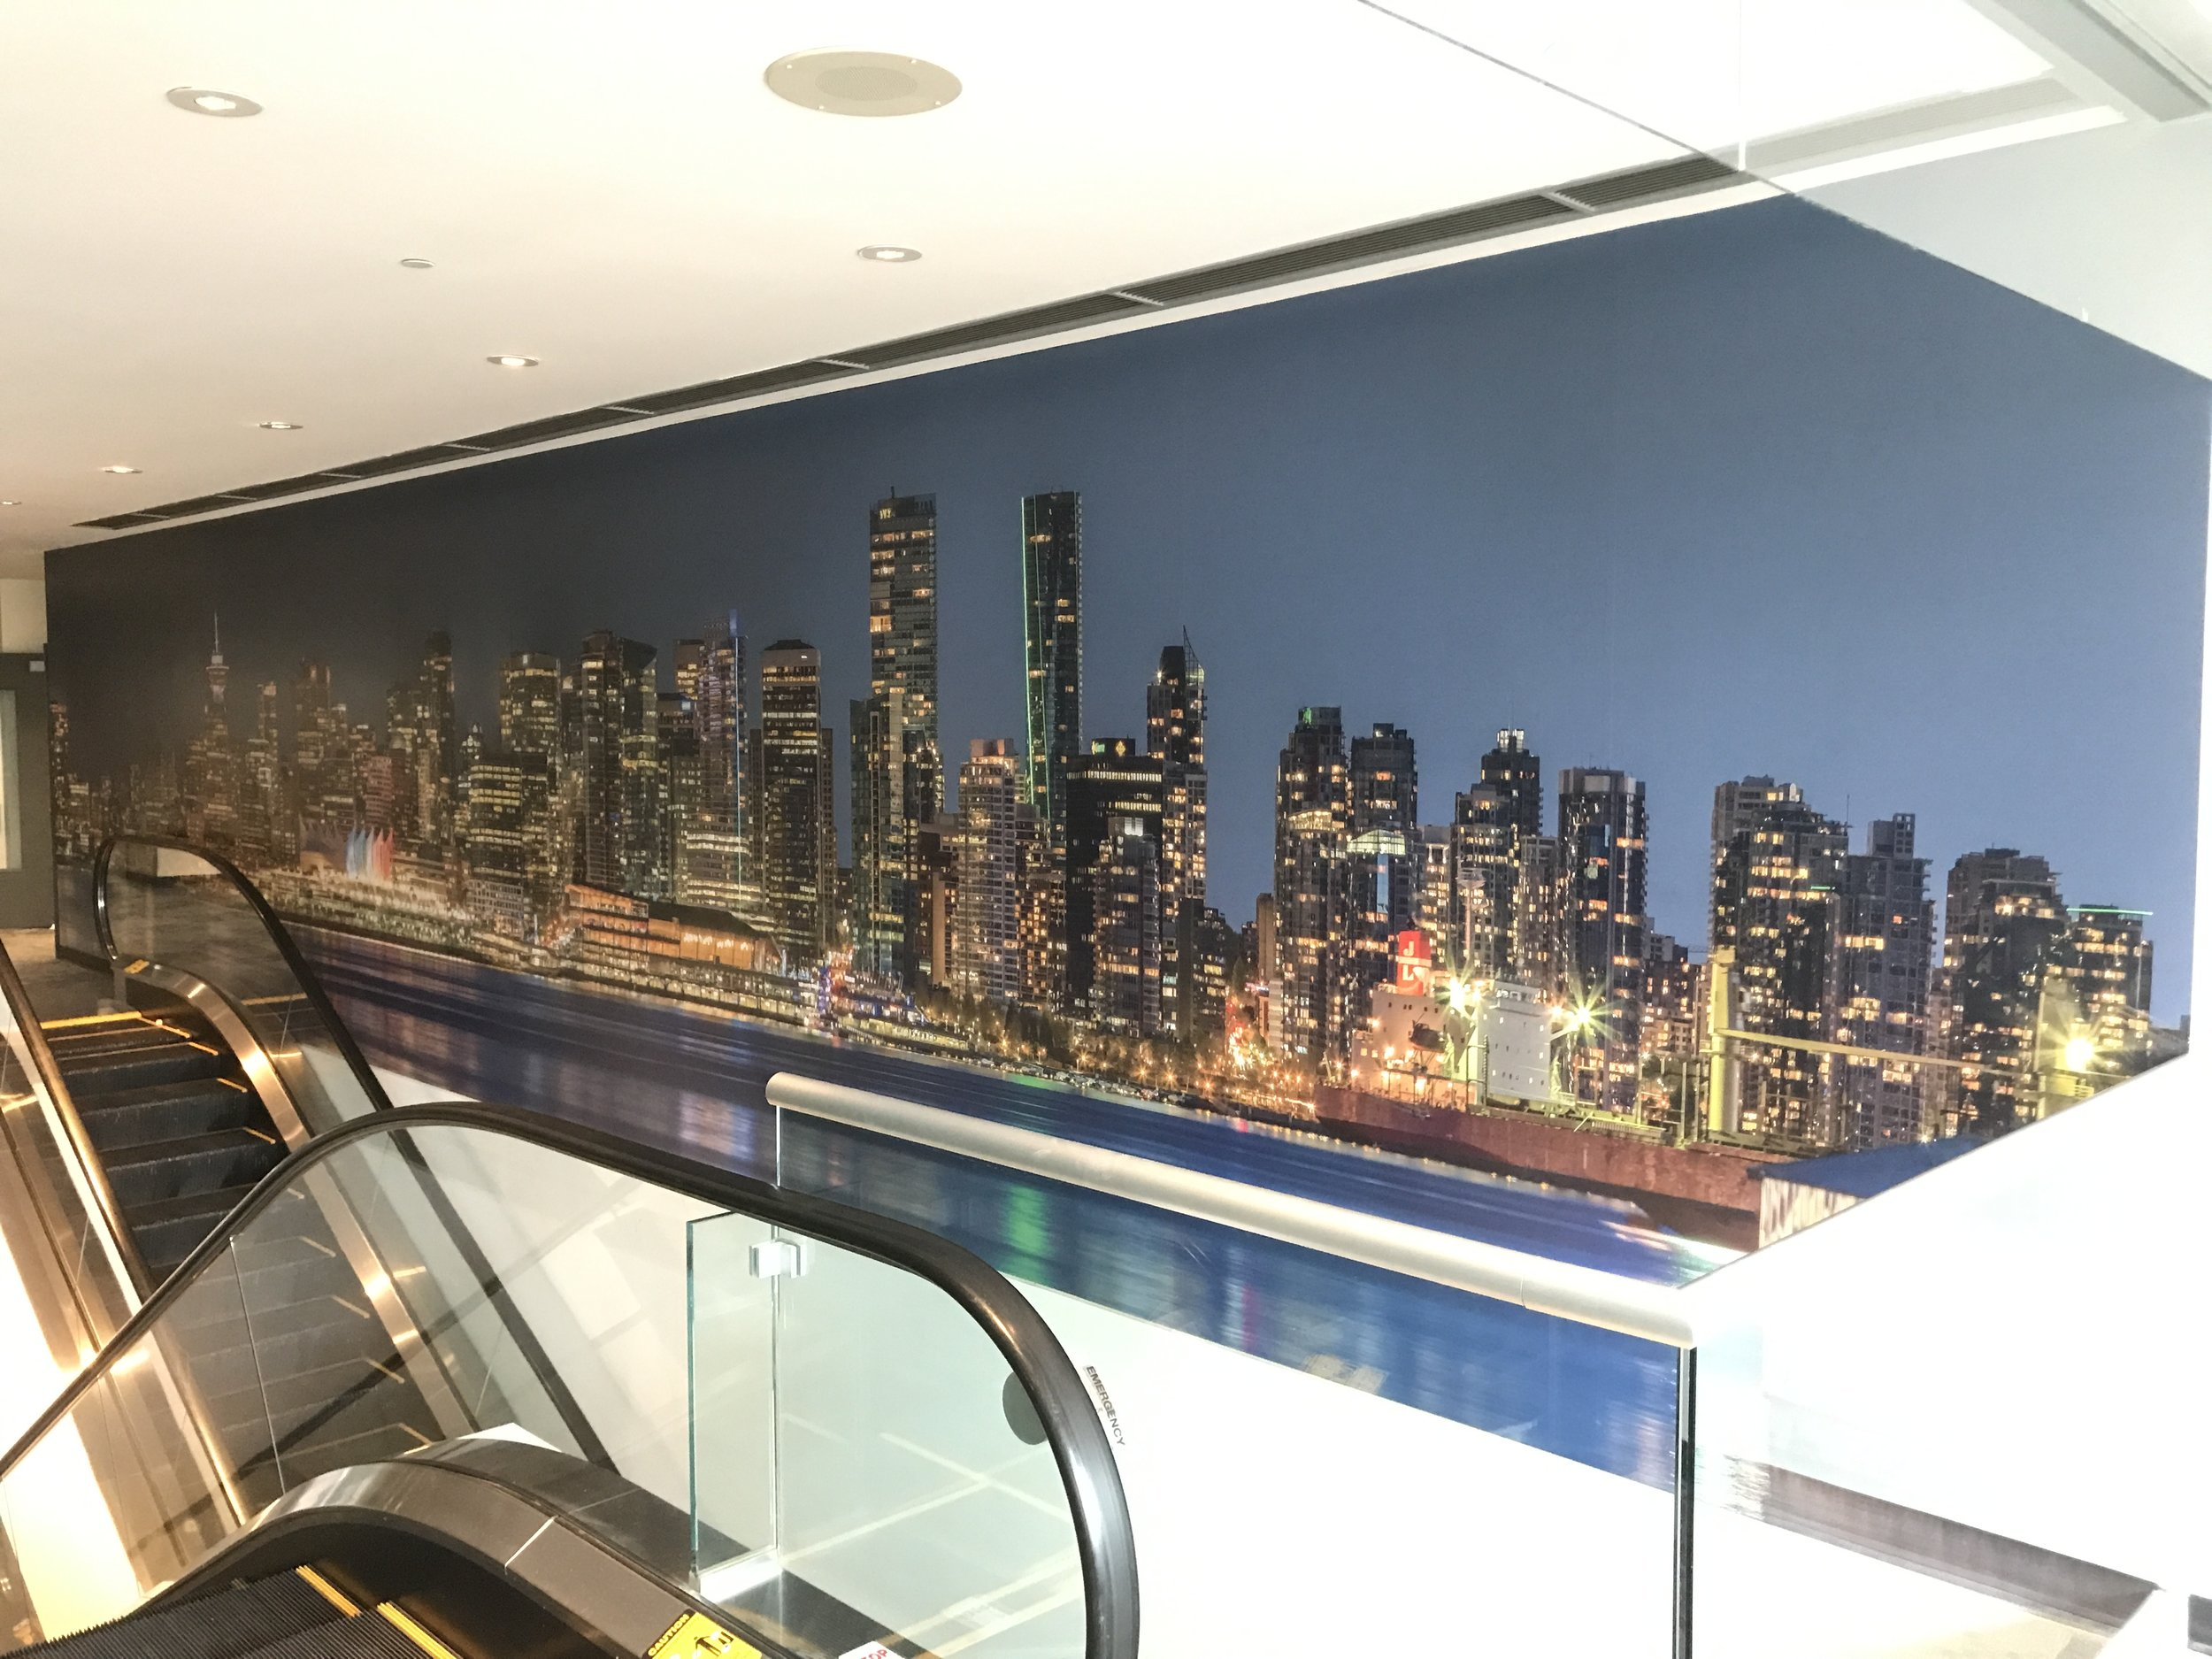 "497"" x 108"" Wall Installation at CTV"